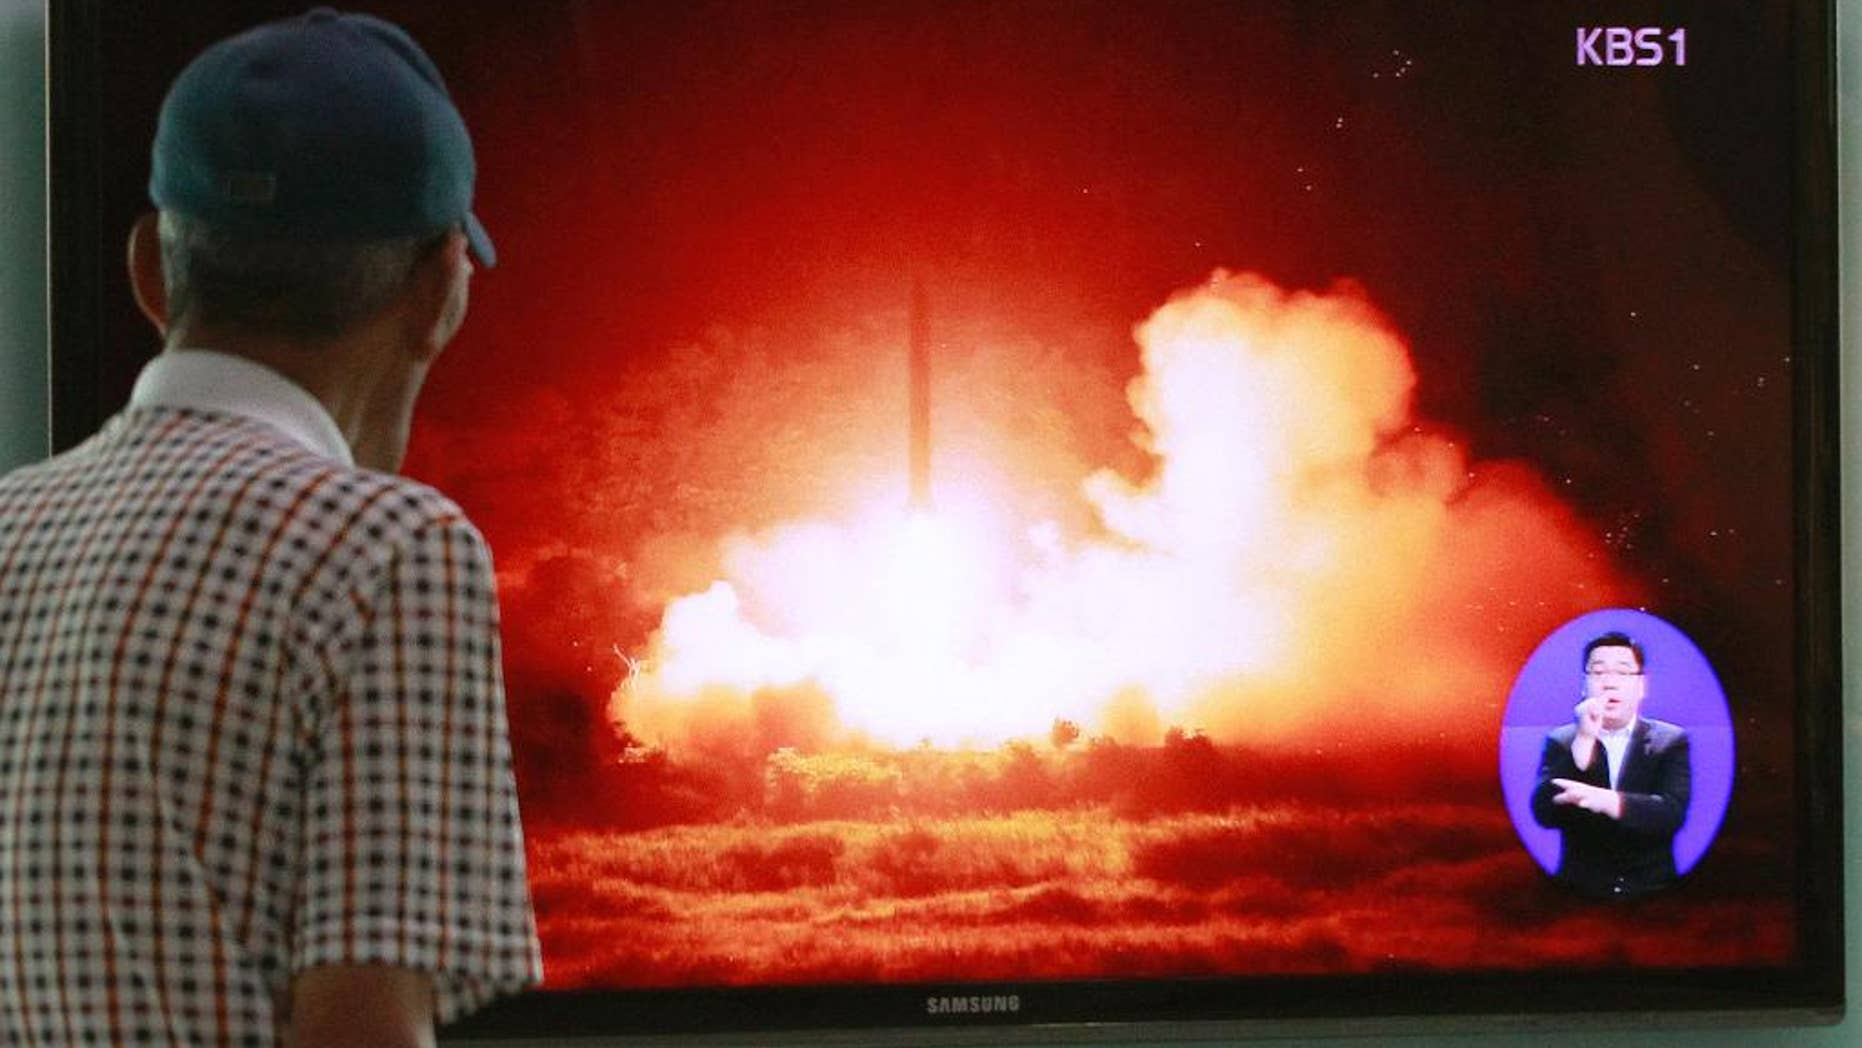 A man watches a TV news program showing a file picture of a missile launch conducted by North Korea, at Seoul Railway Station in Seoul, South Korea, Sunday, July 13, 2014.  North  Korea launched ballistic missiles into the sea on Sunday, South Korea said, the latest in a series of test-firings seen as expressions of anger over the North's failure to win talks on receiving outside aid, and over ongoing U.S.-South Korean military drills. (AP Photo/Ahn Young-joon)